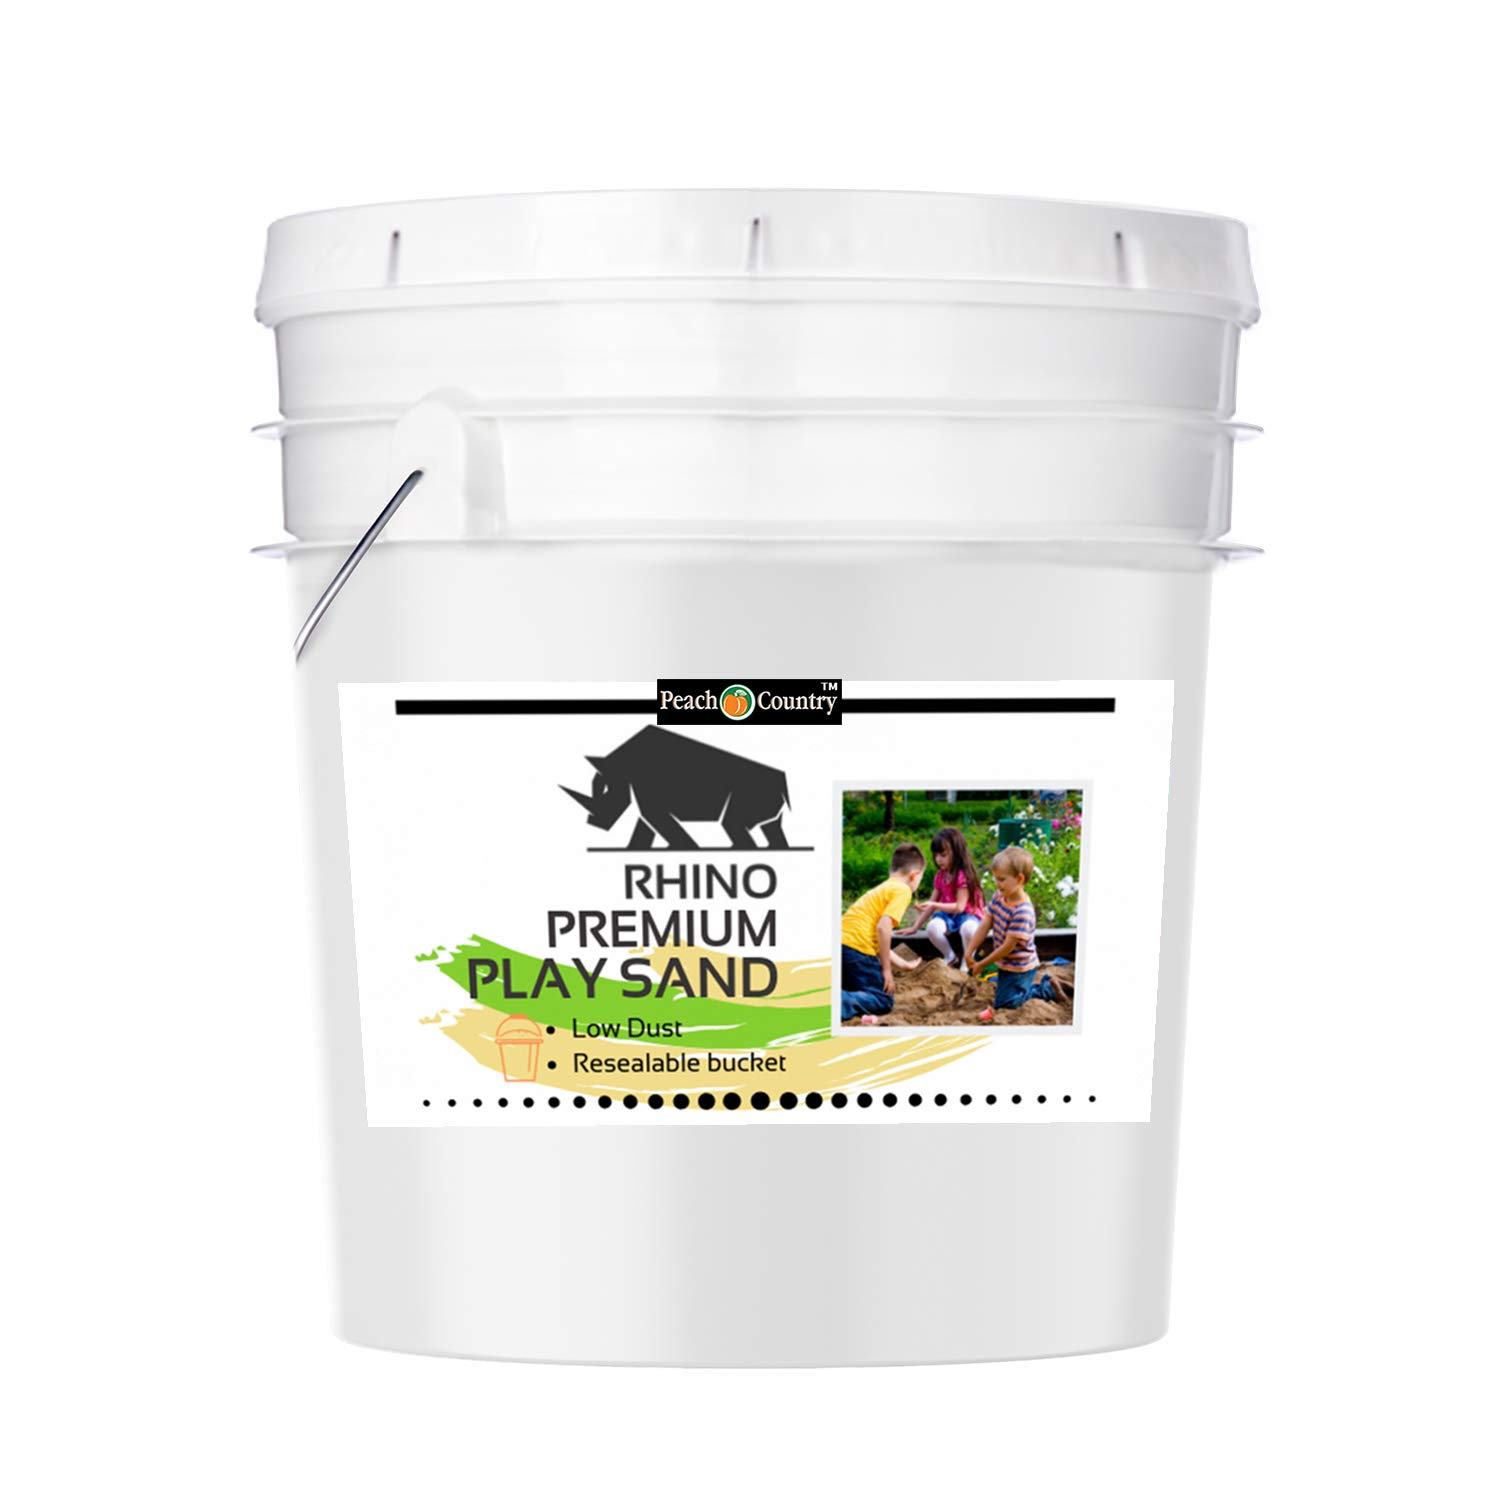 Rhino Natural Premium Low Dust Play Sand- for Sand Box, Play Ground Area, Sand Art, Indoor/Outdoor with Resealable Bucket (50 Pound Bucket) by Peach Country